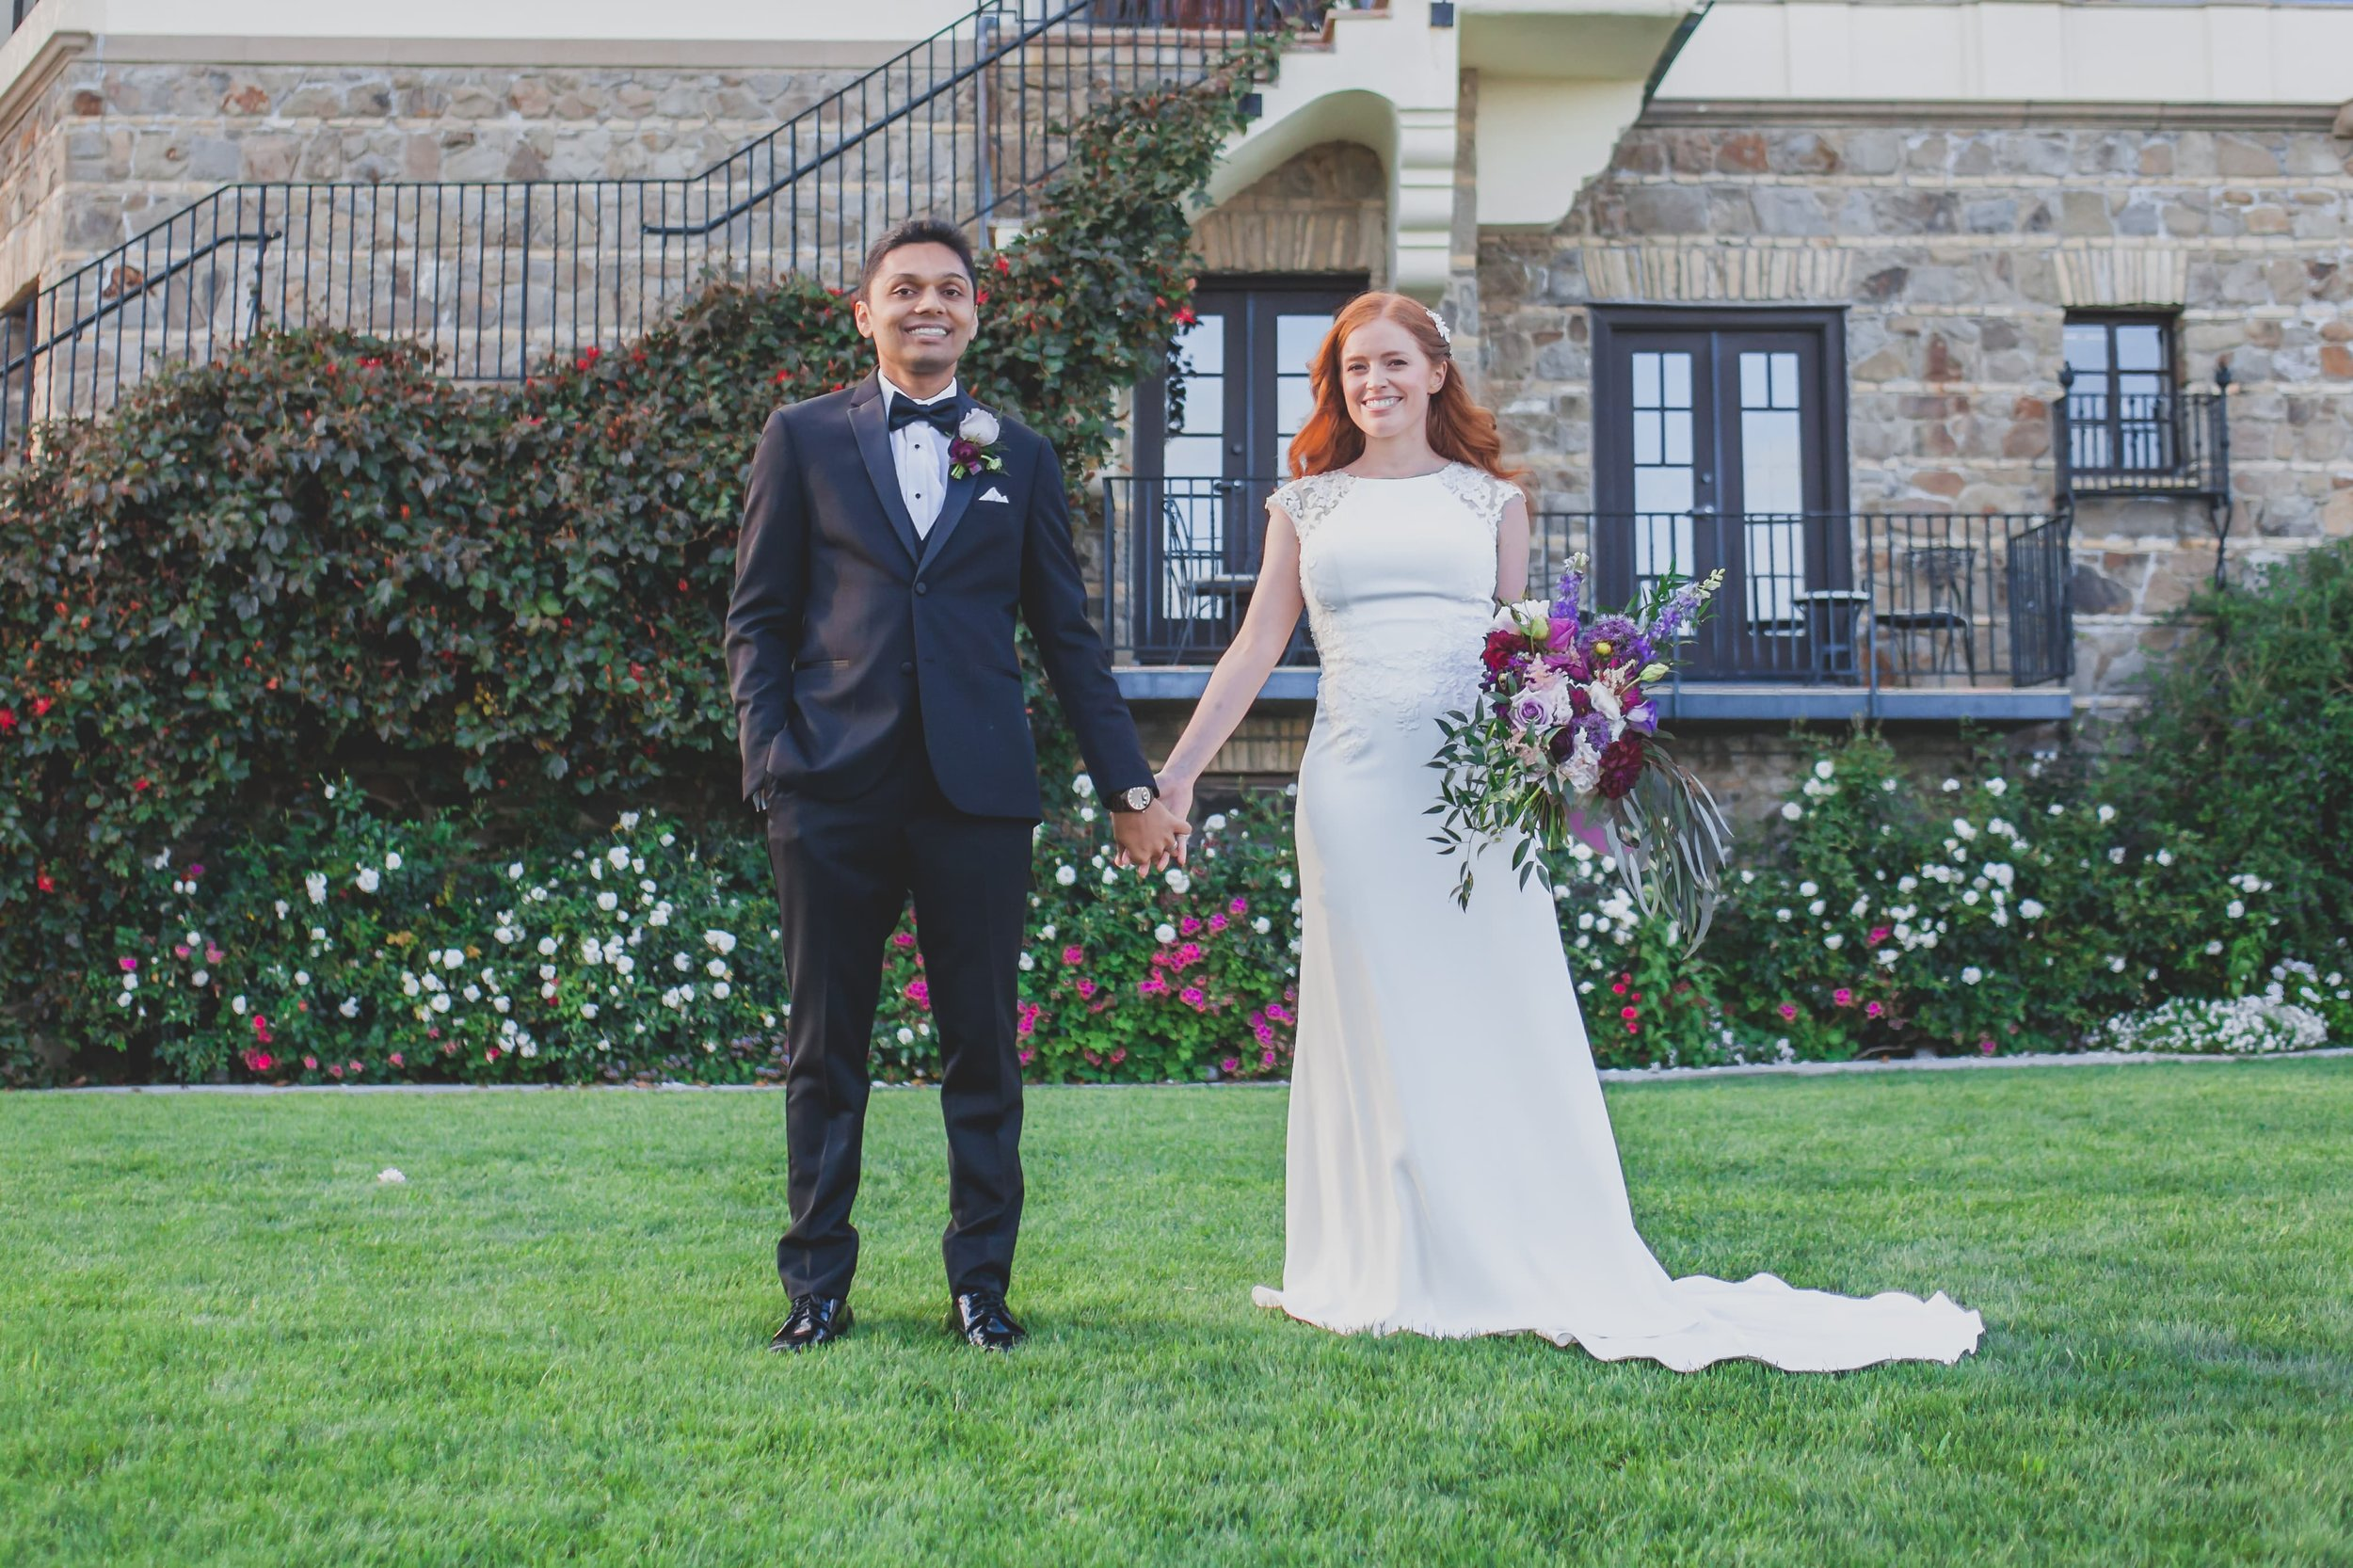 Wedding Photography - Pacific Palisades, CA - Bel Air Bay Club - Bride and groom holding hands in front of their wedding venue.